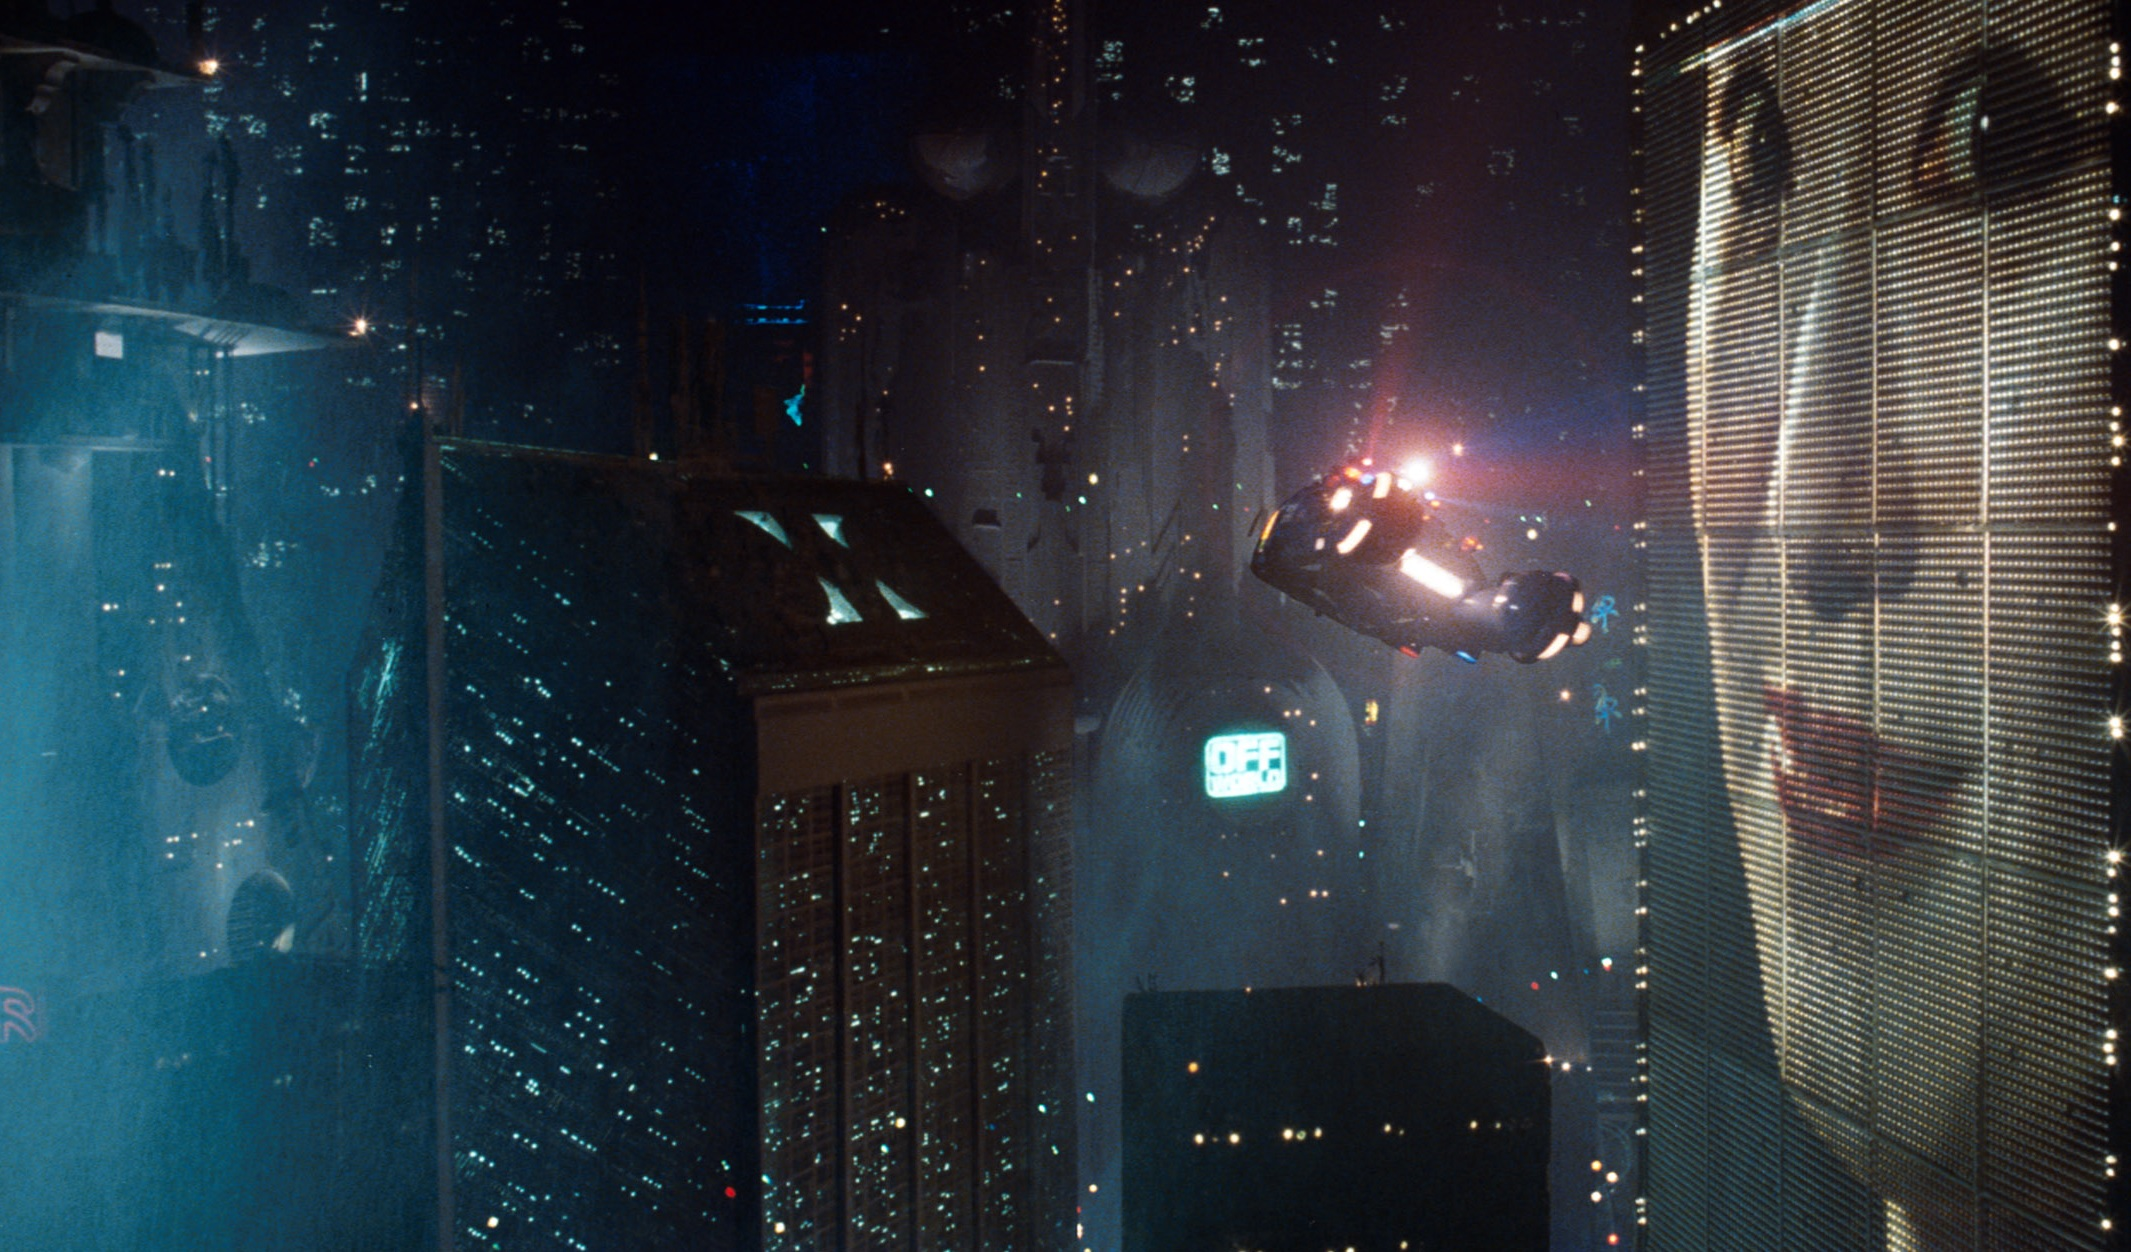 Asian woman on building-size advertisement in Blade Runner